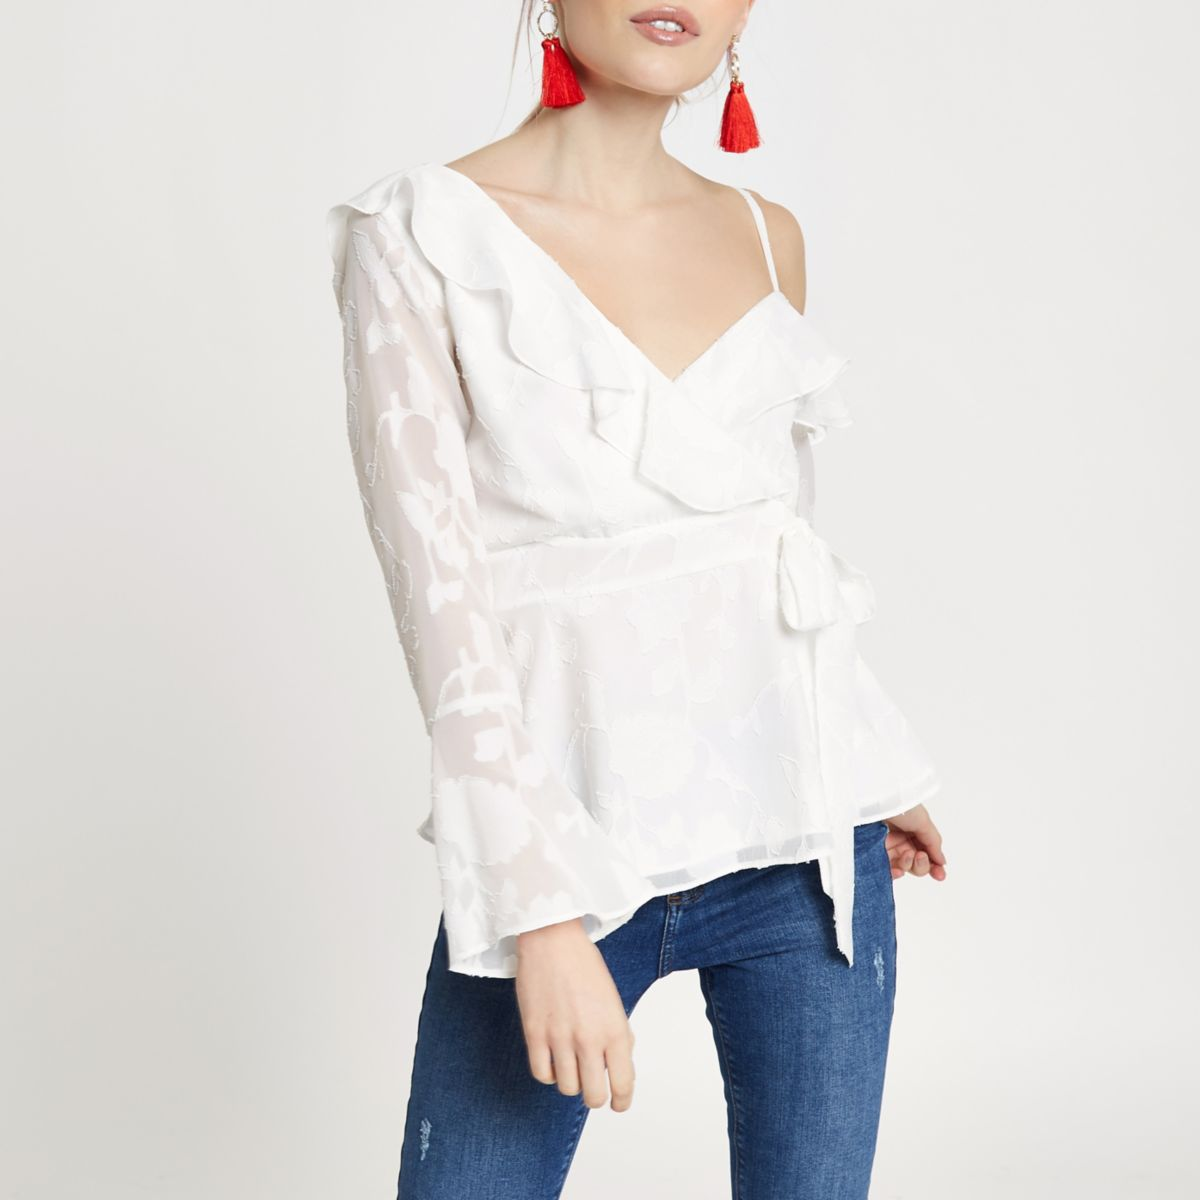 Petite white jacquard one shoulder blouse